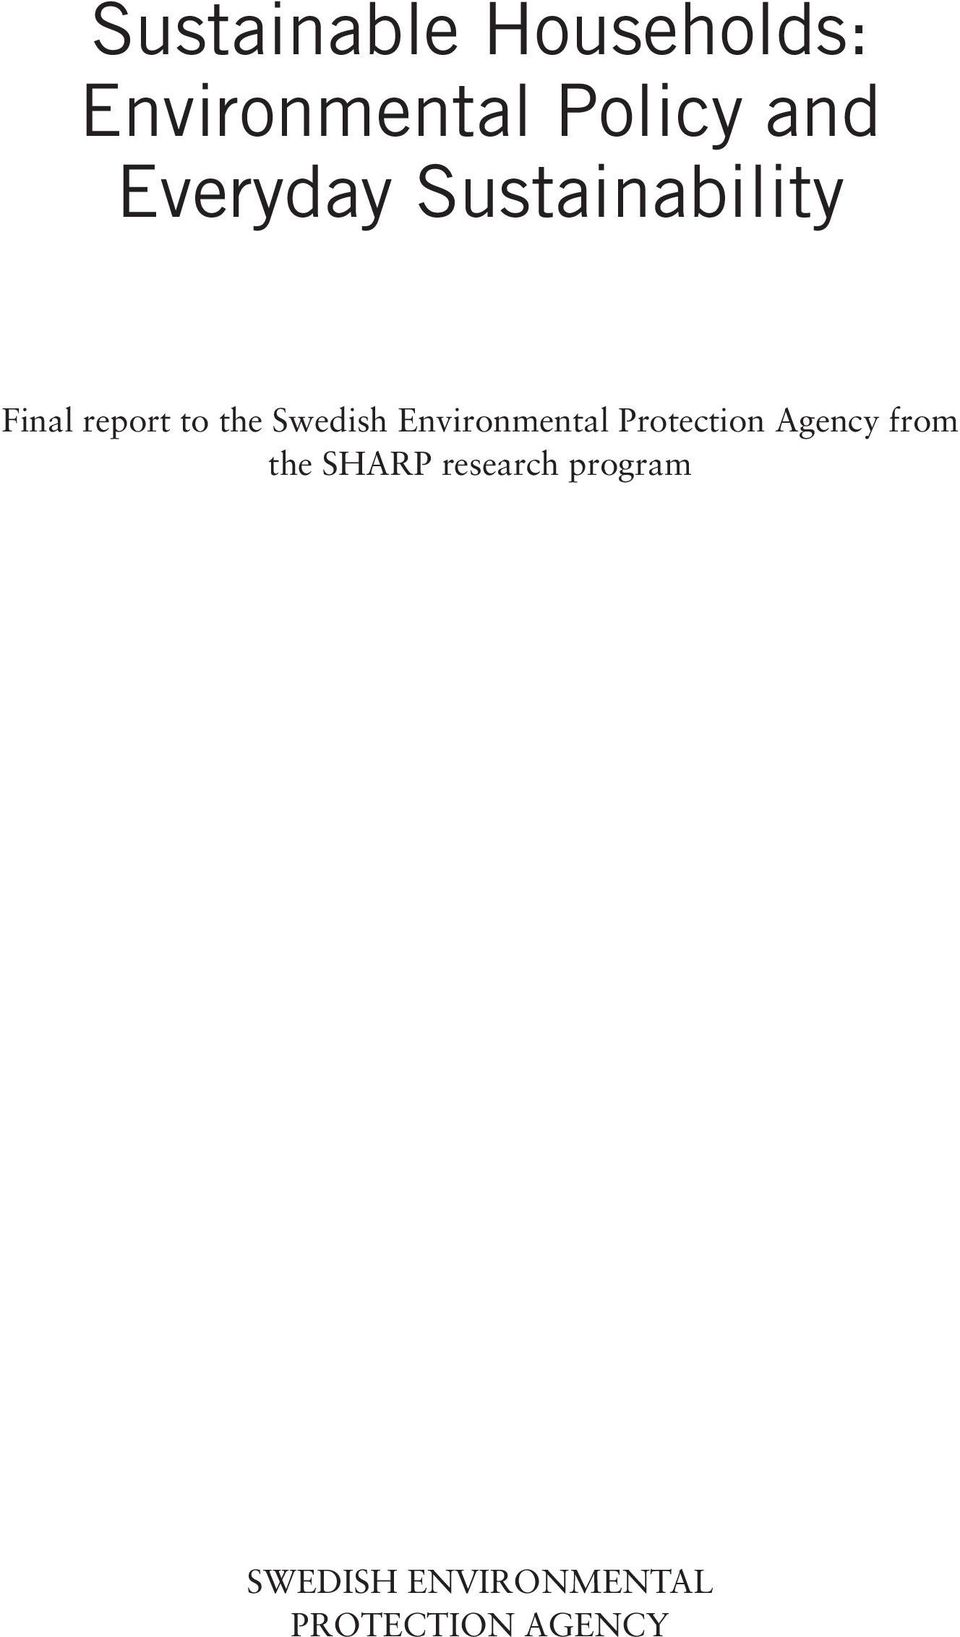 Swedish Environmental Protection Agency from the